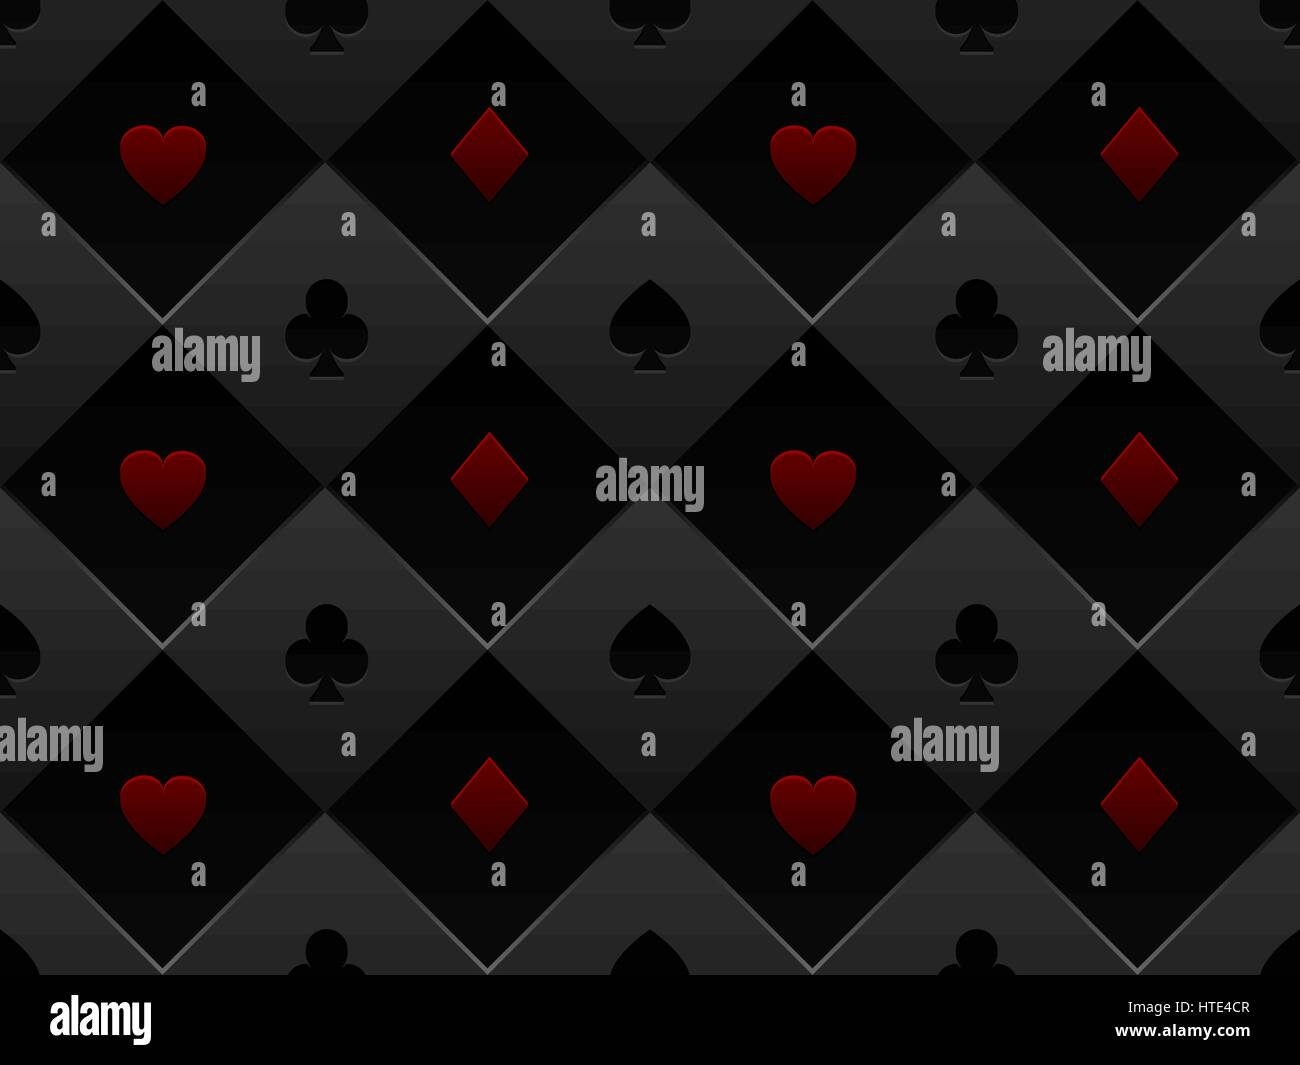 Poker table background - Black And Red Seamless Pattern Fabric Poker Table Minimalistic Casino Vector 3d Background With Texture